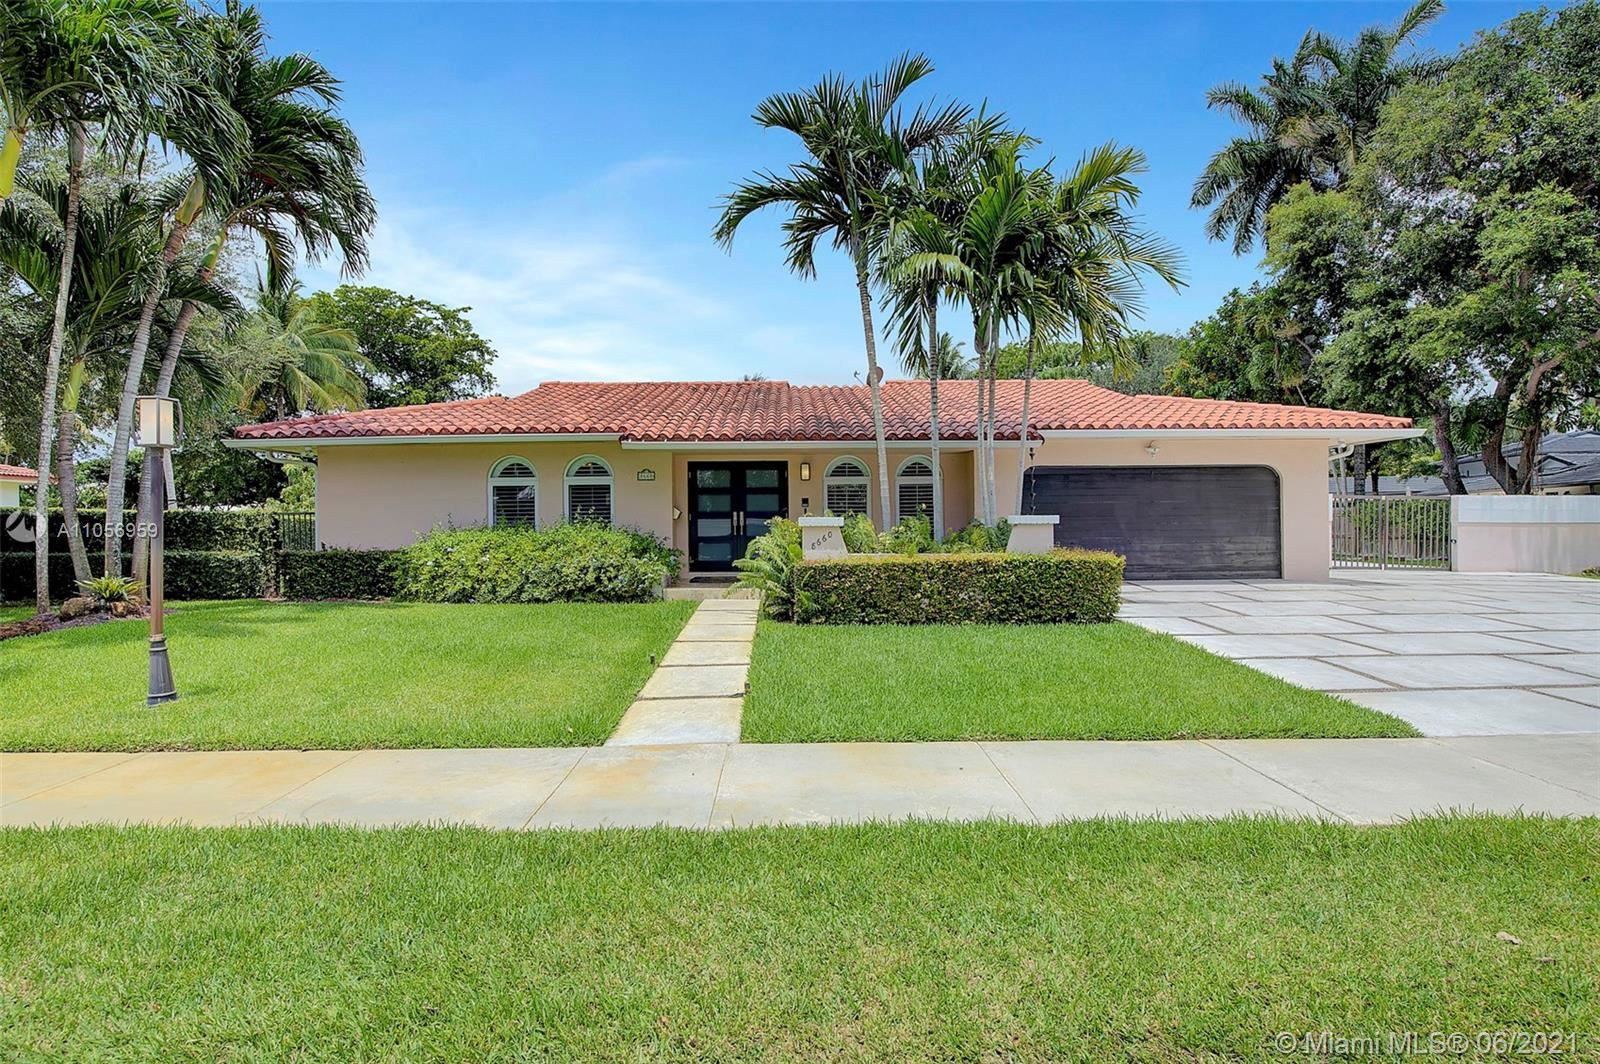 8660 SW 64th Ave, Pinecrest, FL 33156 - #: A11056959